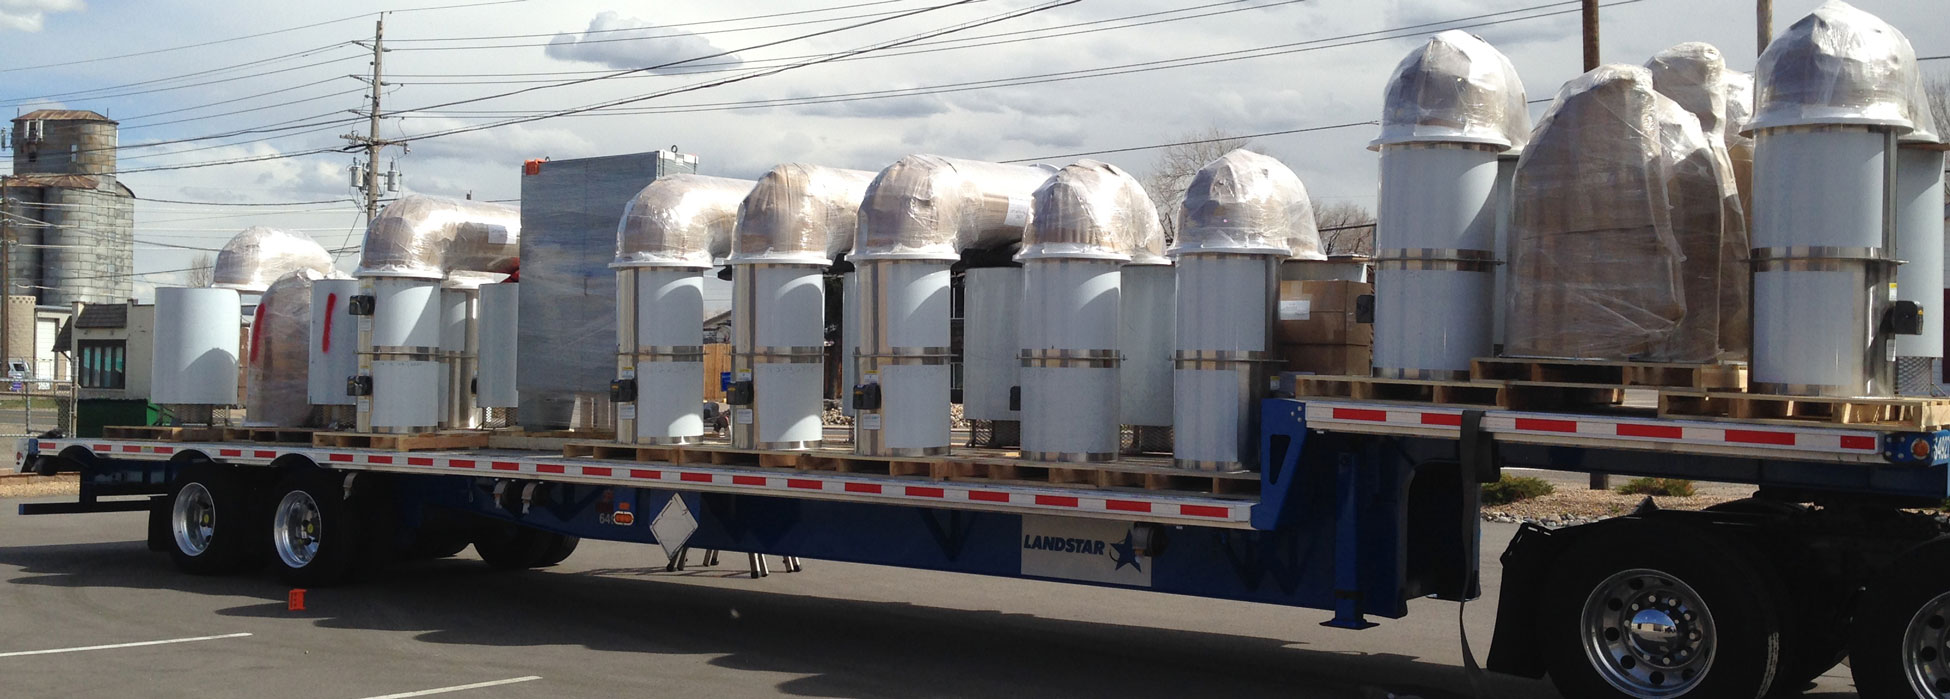 Parts - Aerodry Systems | Car-Truck-Train-Bus Dryers | The Quiet Dryers | Broomfield, Colorado, USA